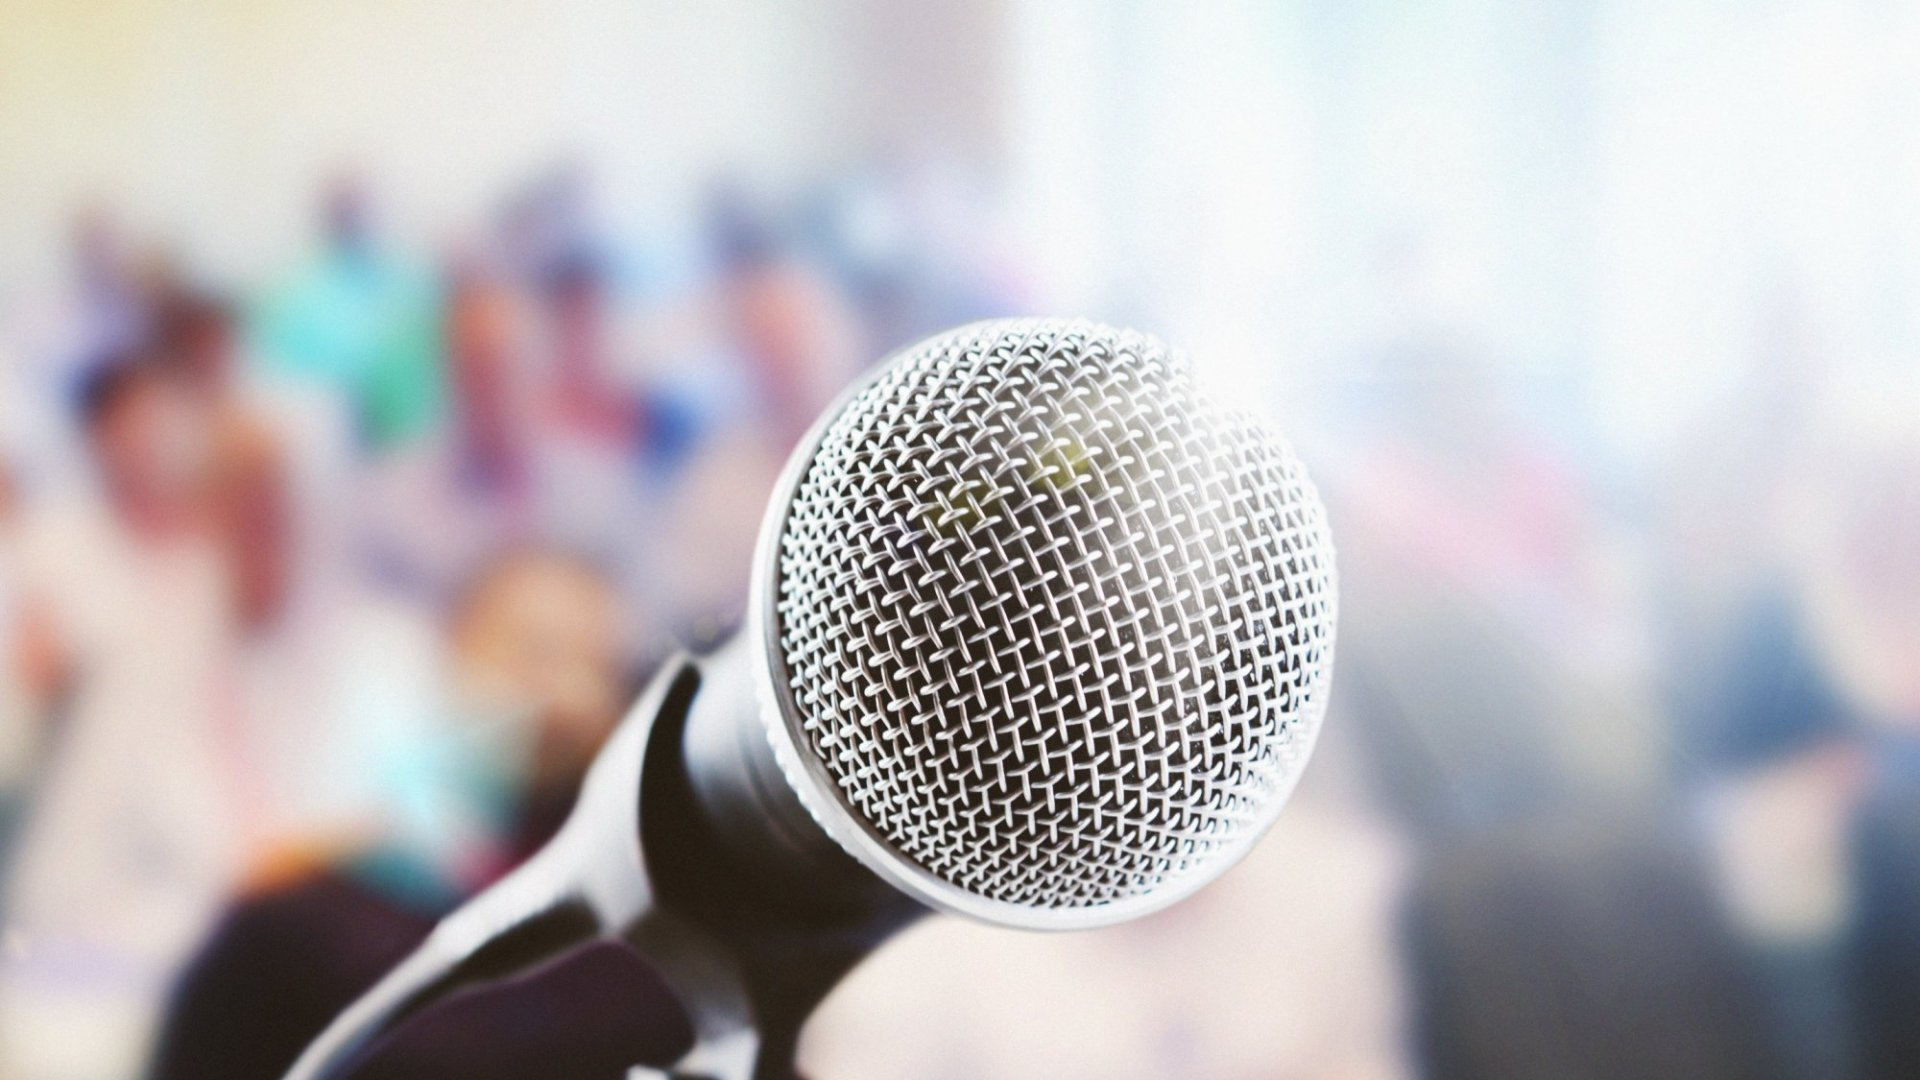 Public Speaking Outside Your Comfort Zone: Why Do It, and How to Do It Well